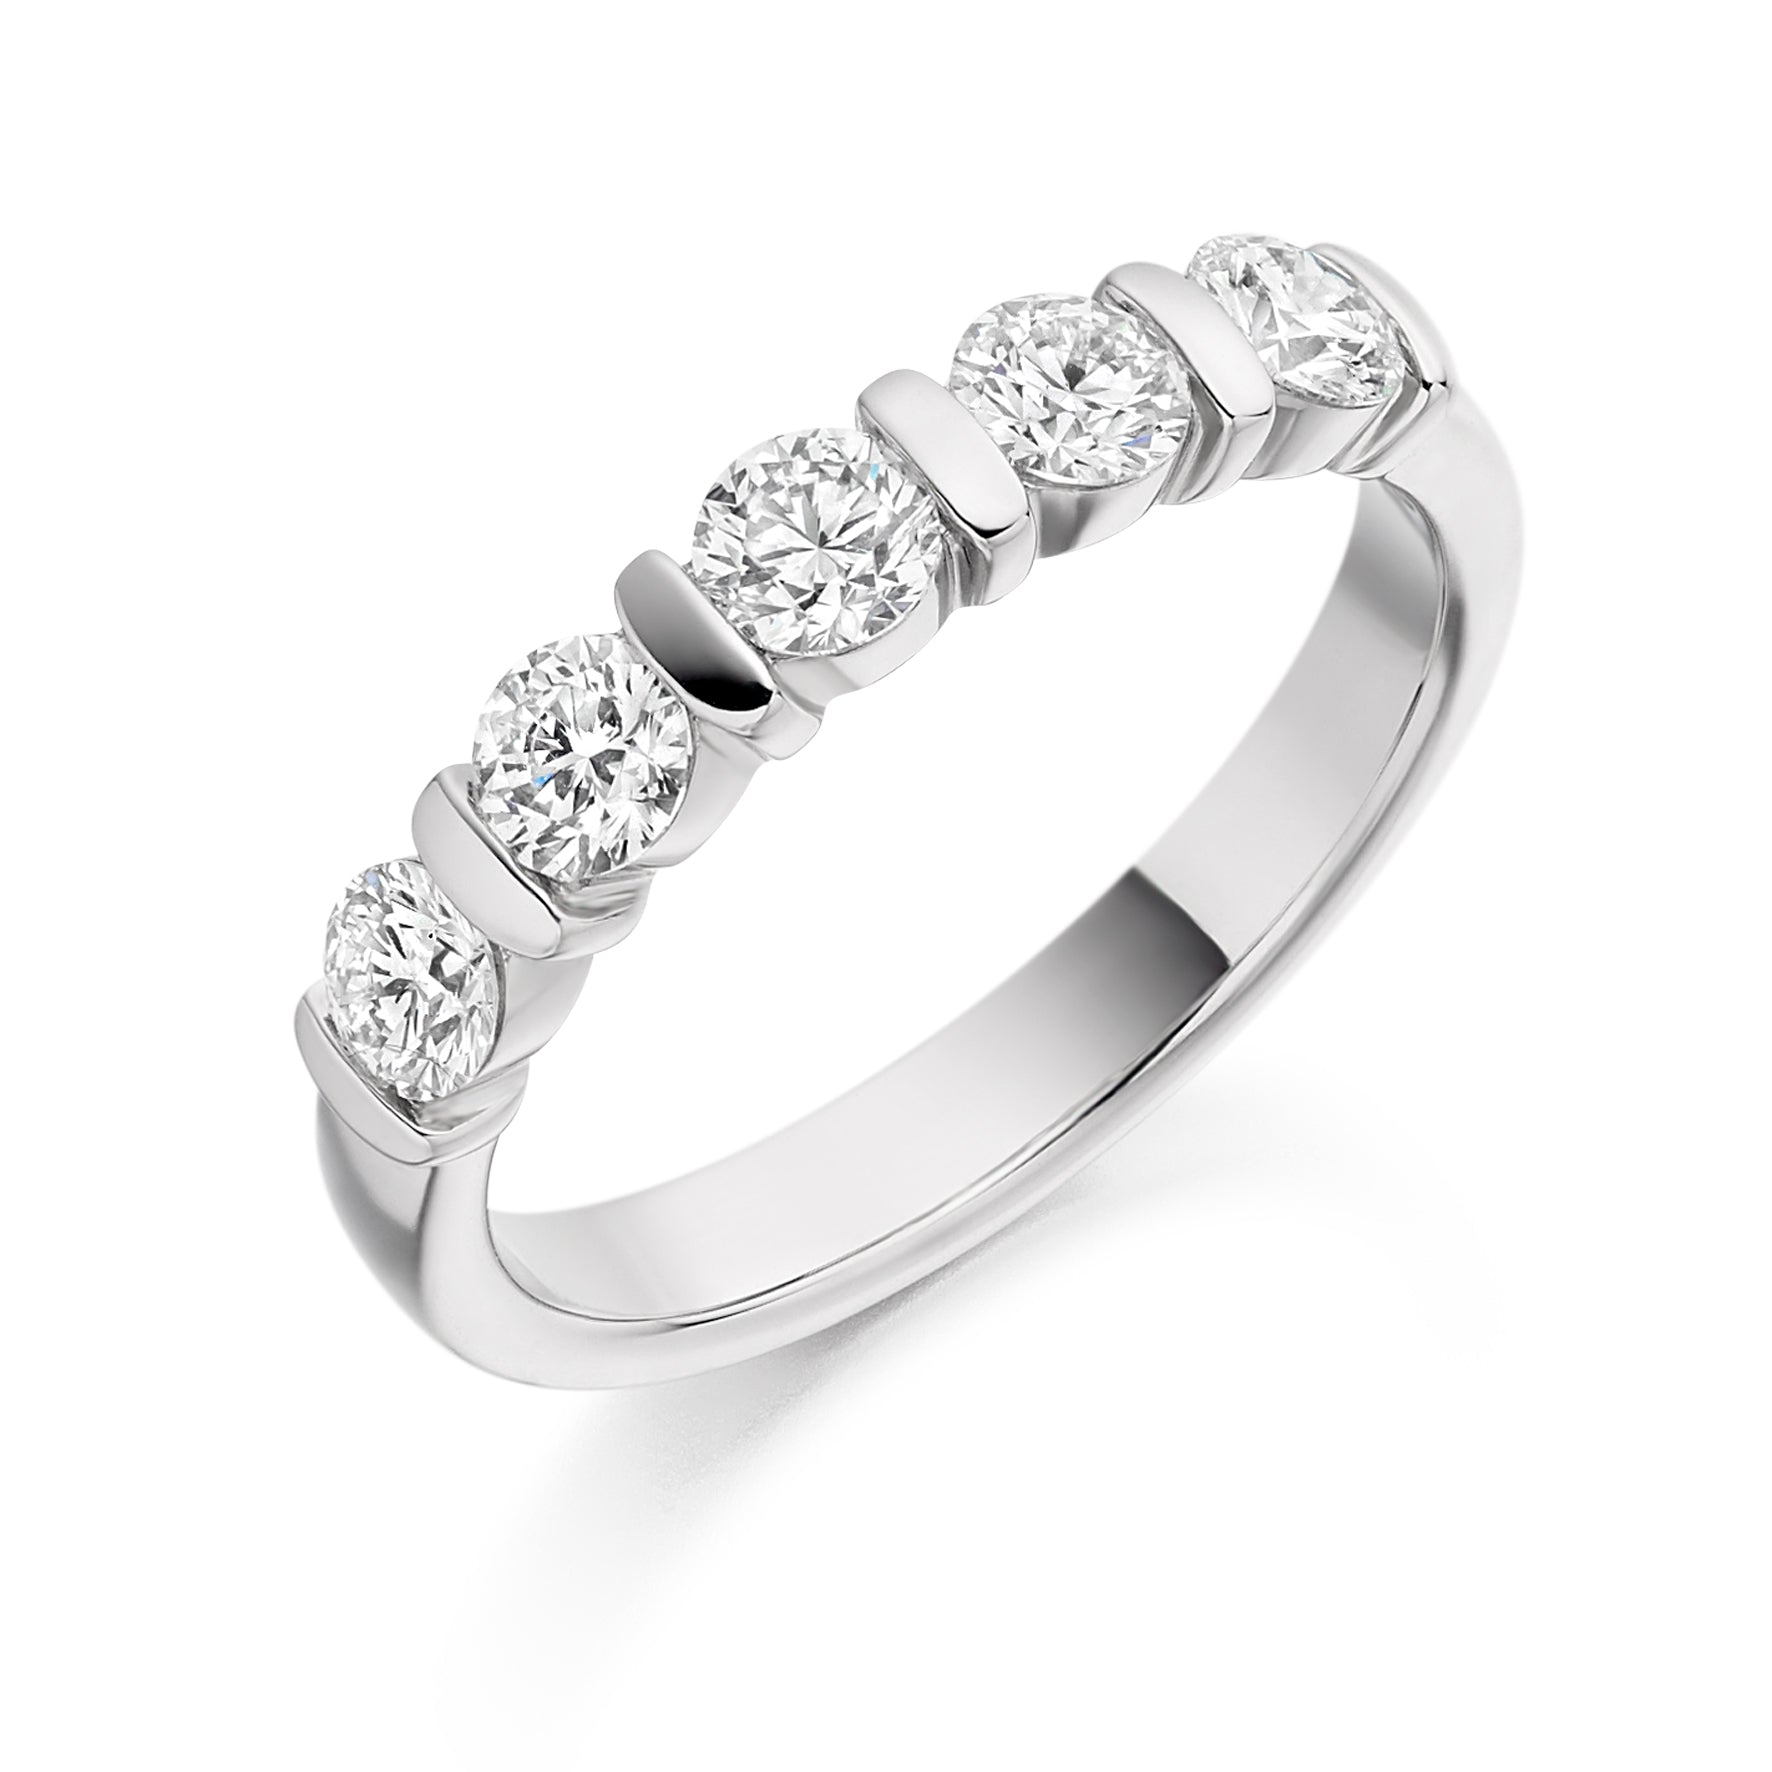 0.75ct Round Brilliant Cut Bar Set Diamond Wedding Ring - (Home Try-On)